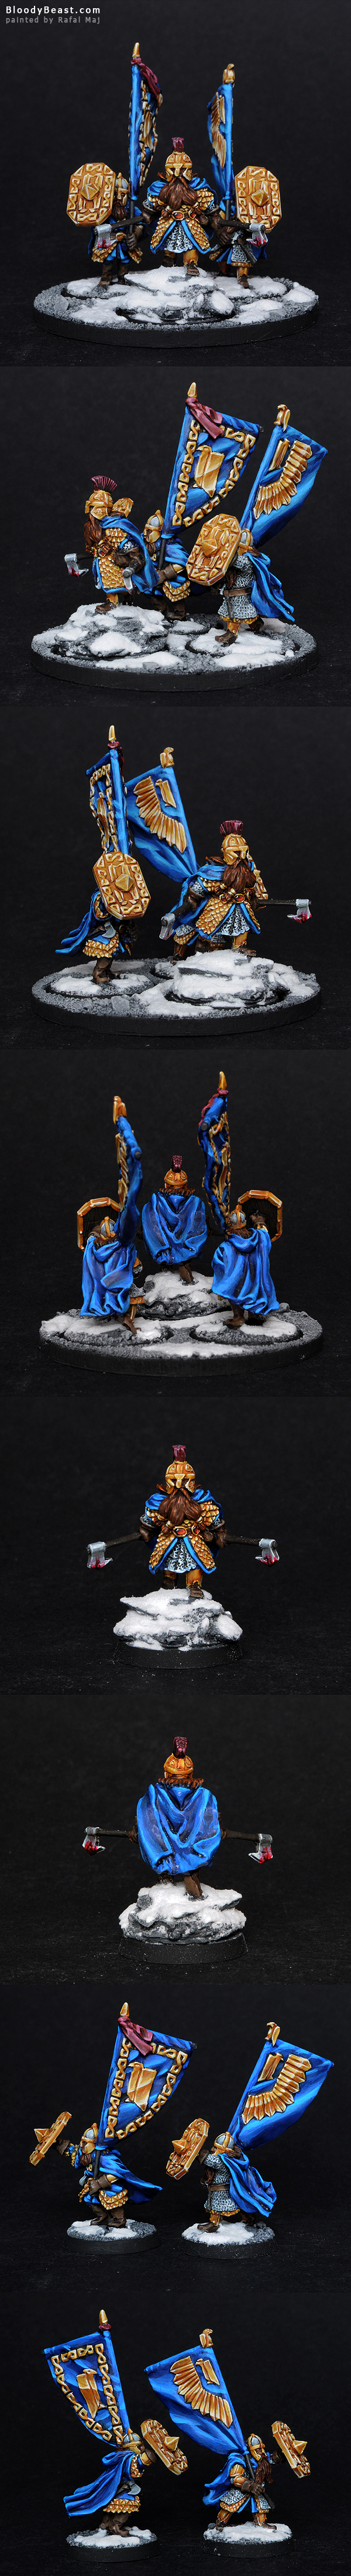 Durin's Folk King's Champion painted by Rafal Maj (BloodyBeast.com)